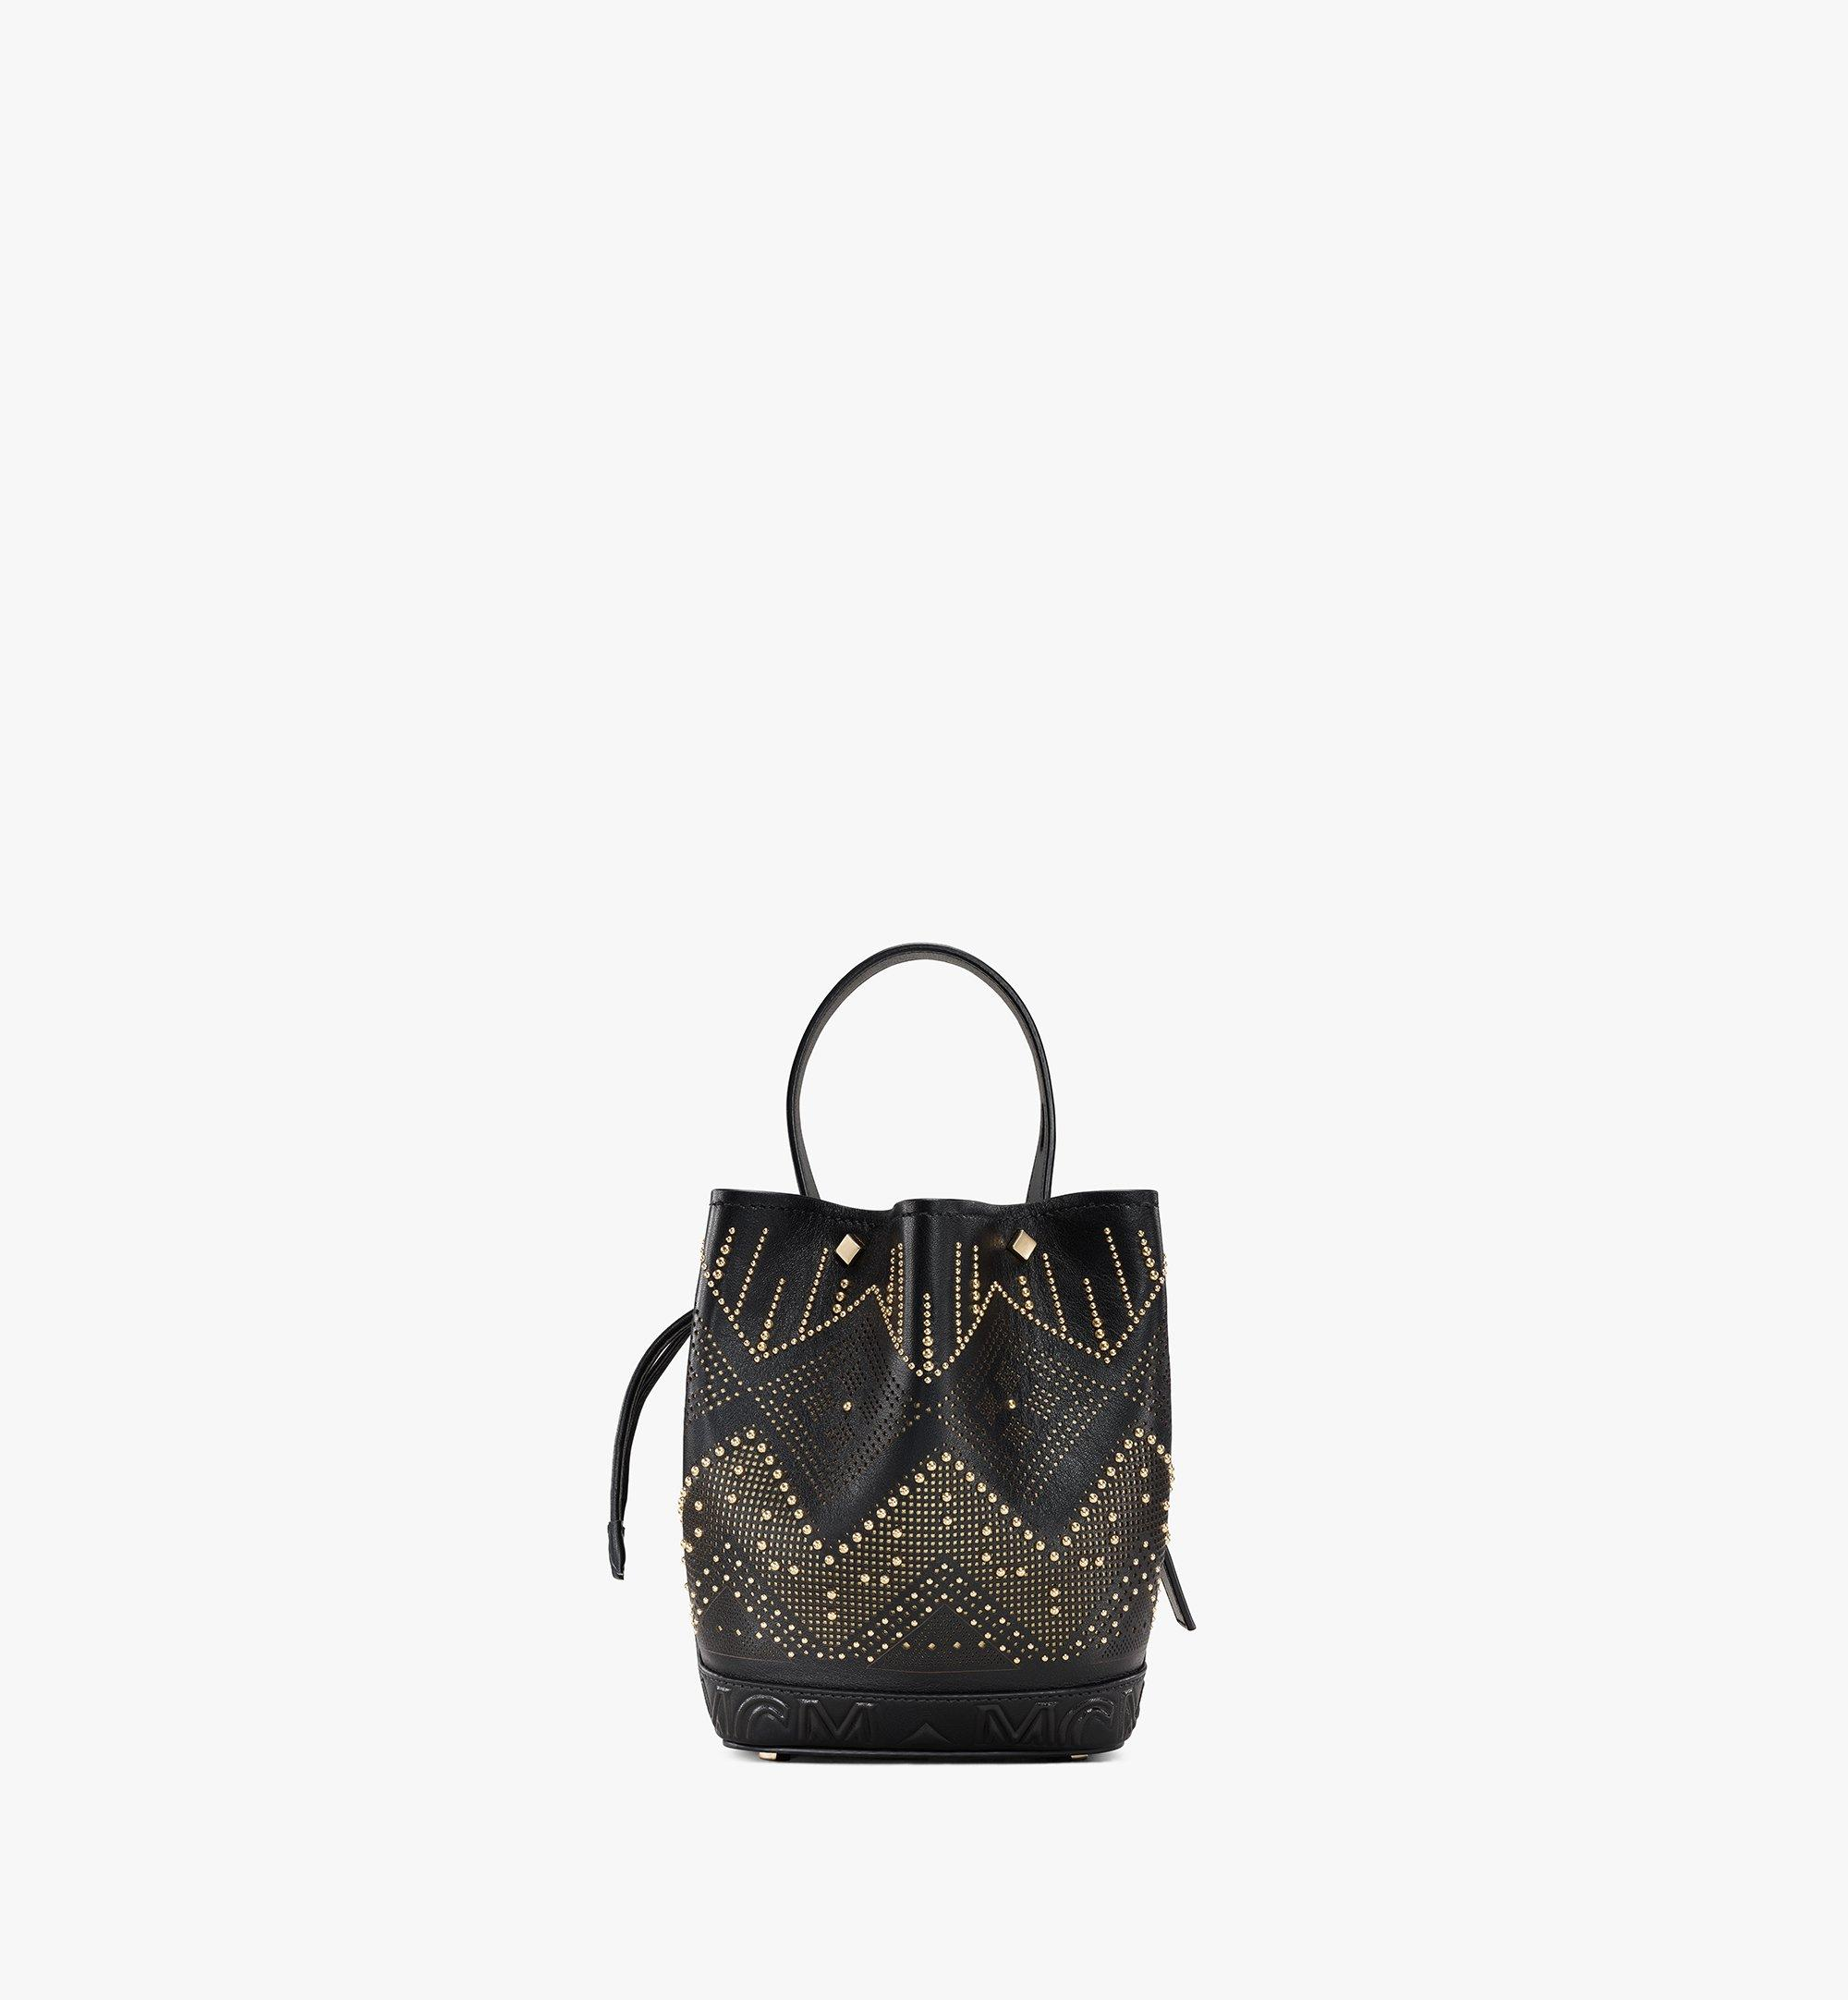 MCM Milano Lux Drawstring Bag in Studded Leather Black MWDAADA04BK001 Alternate View 4